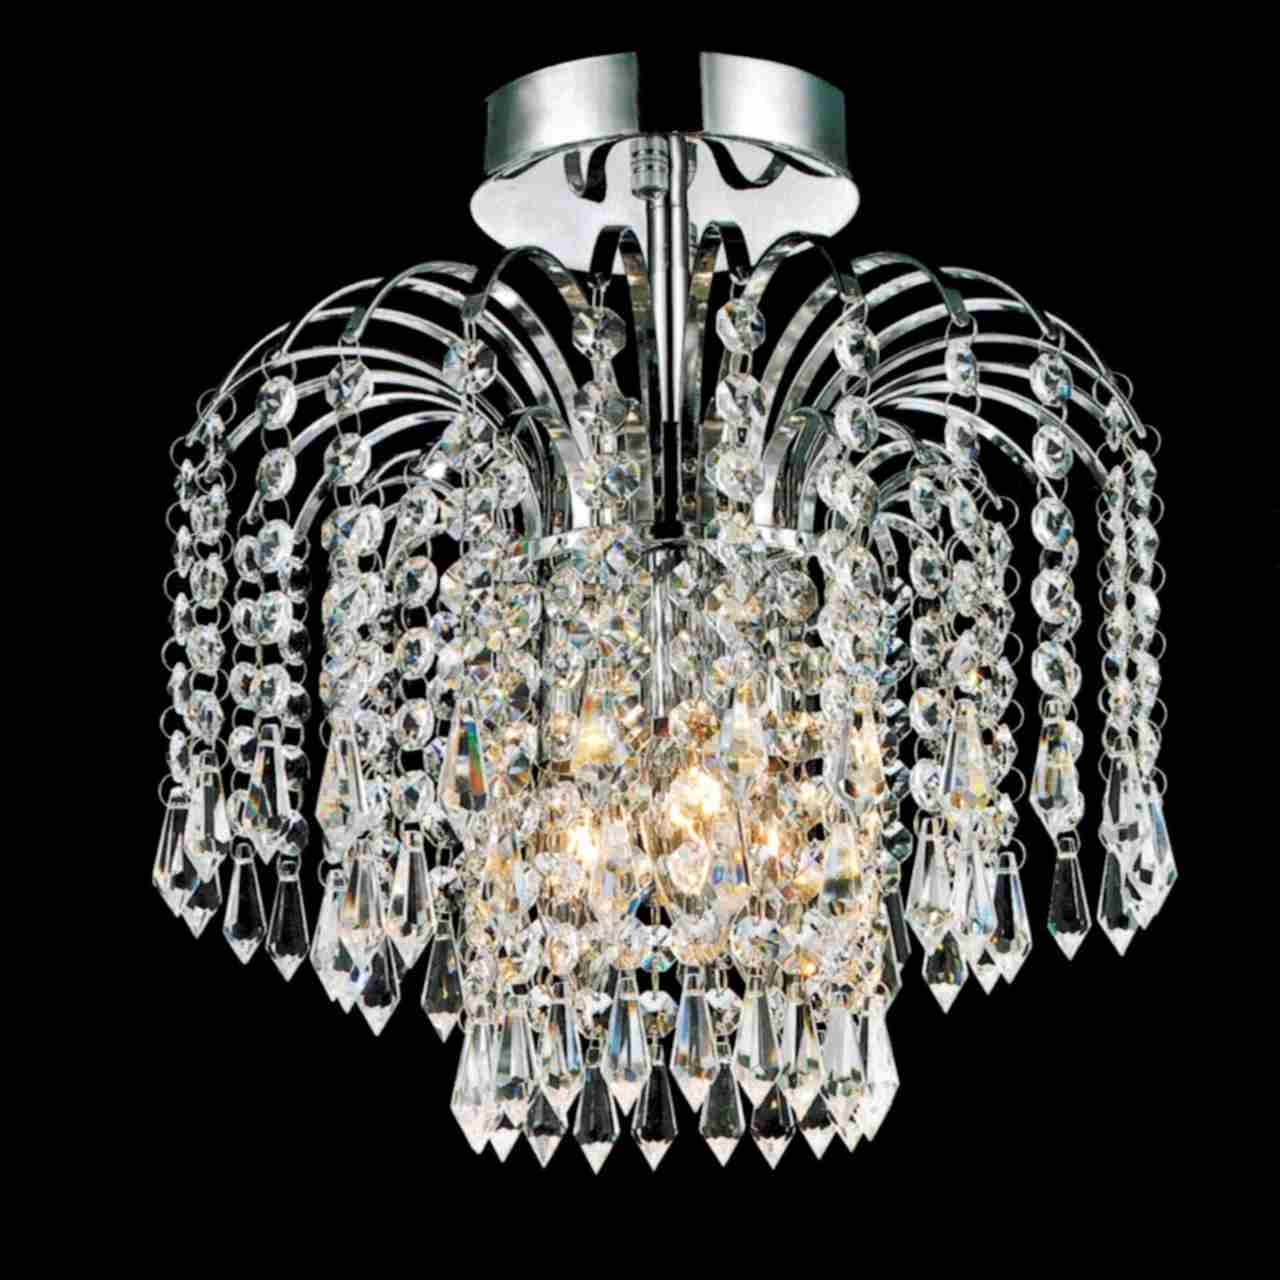 Brizzo Lighting Stores 12 Fountain Crystal Semi Flush Mount Throughout Small Chrome Chandelier (Image 2 of 15)